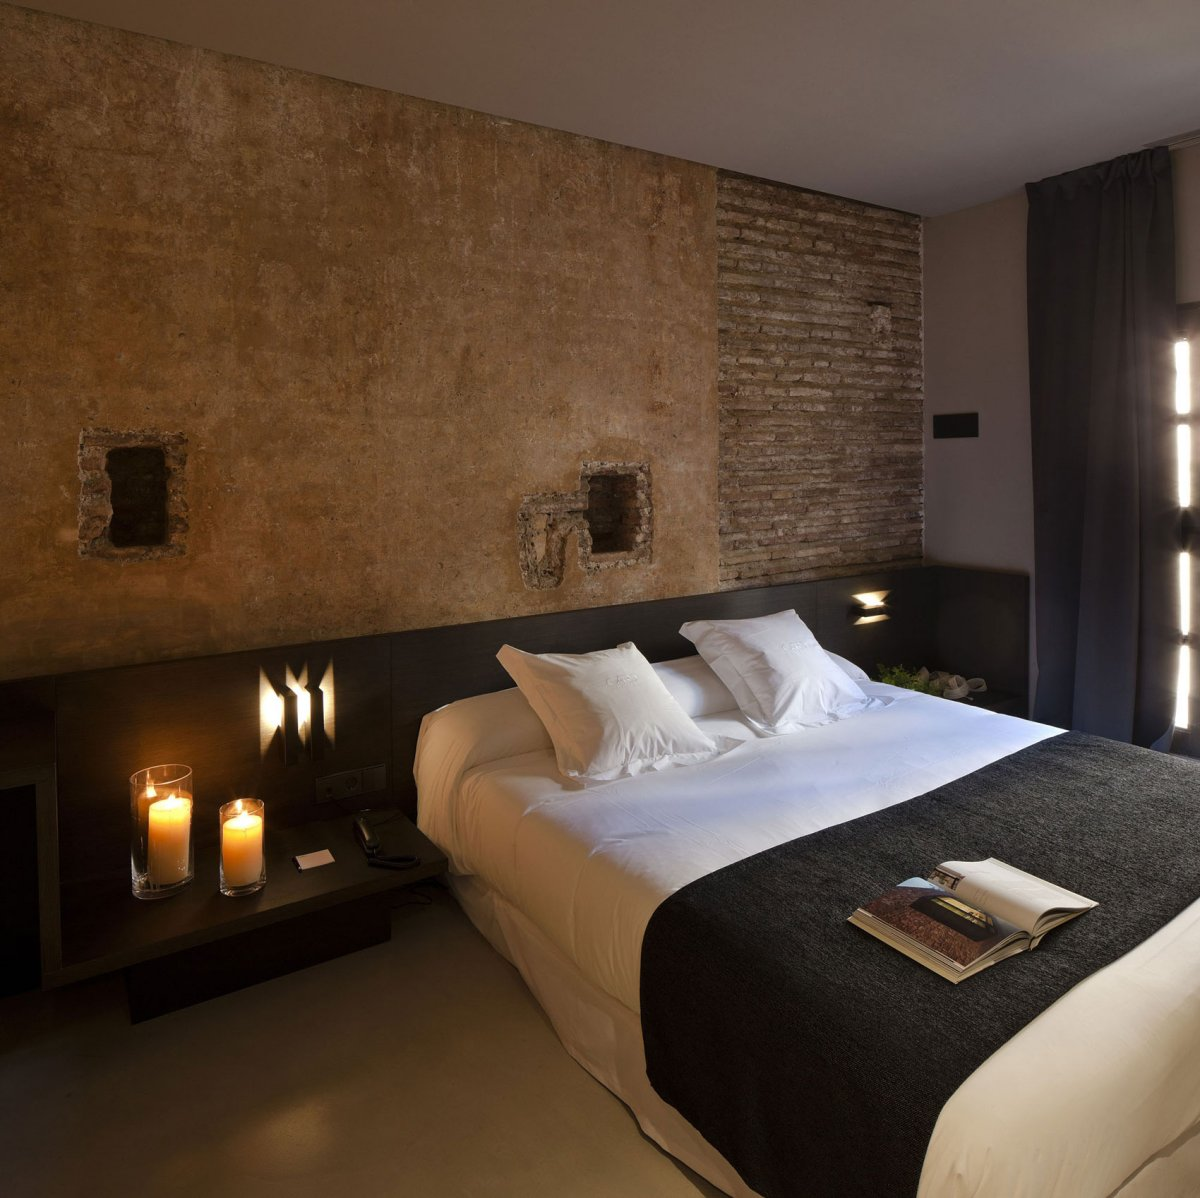 Caro Hotel in Valencia Spain. Rustic walls and new furnishings